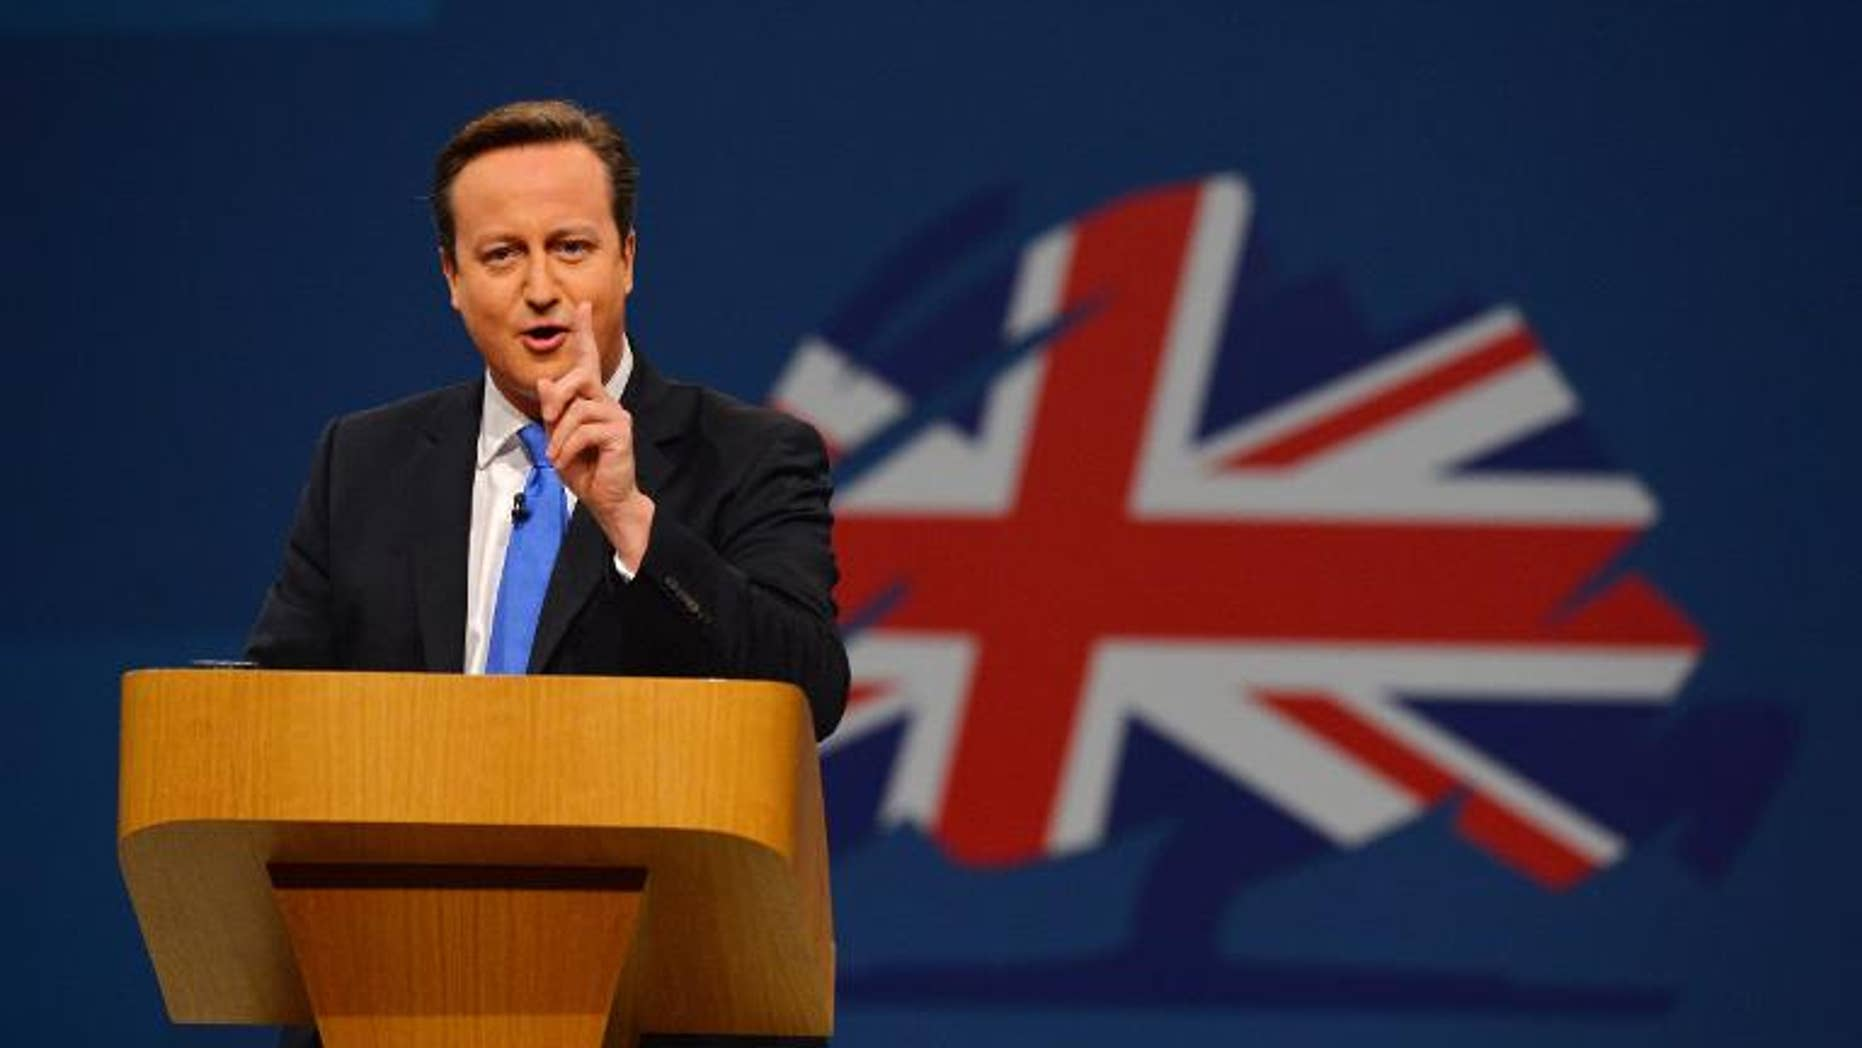 British Prime Minister David Cameron addresses delegates at the annual Conservative Party Conference in Manchester, north-west England, on October 2, 2013